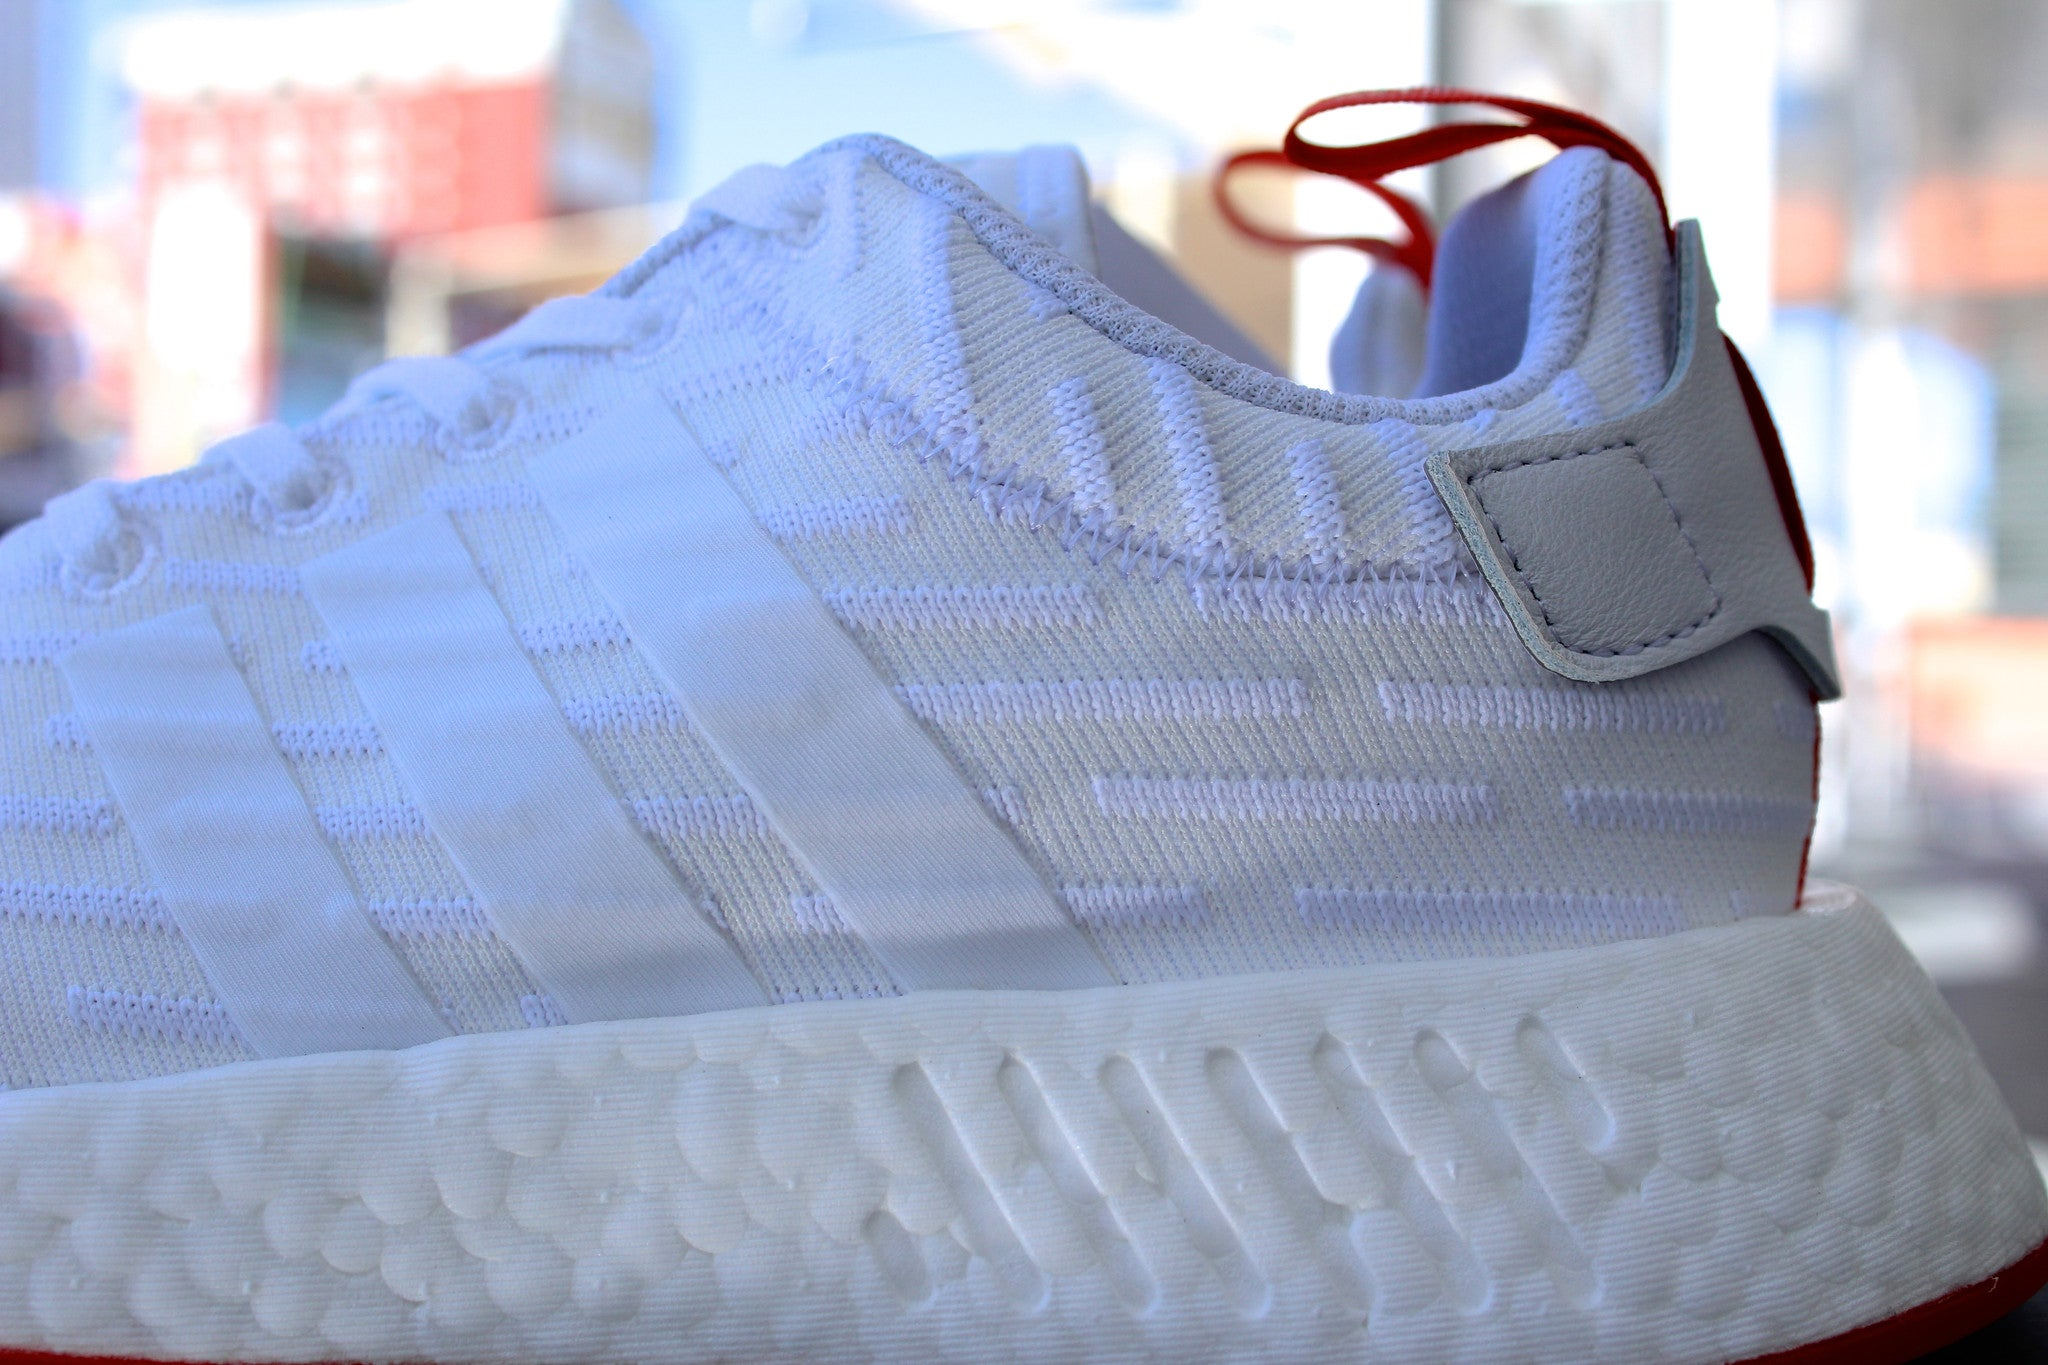 Adidas NMD R2 PK White (Two Tone)